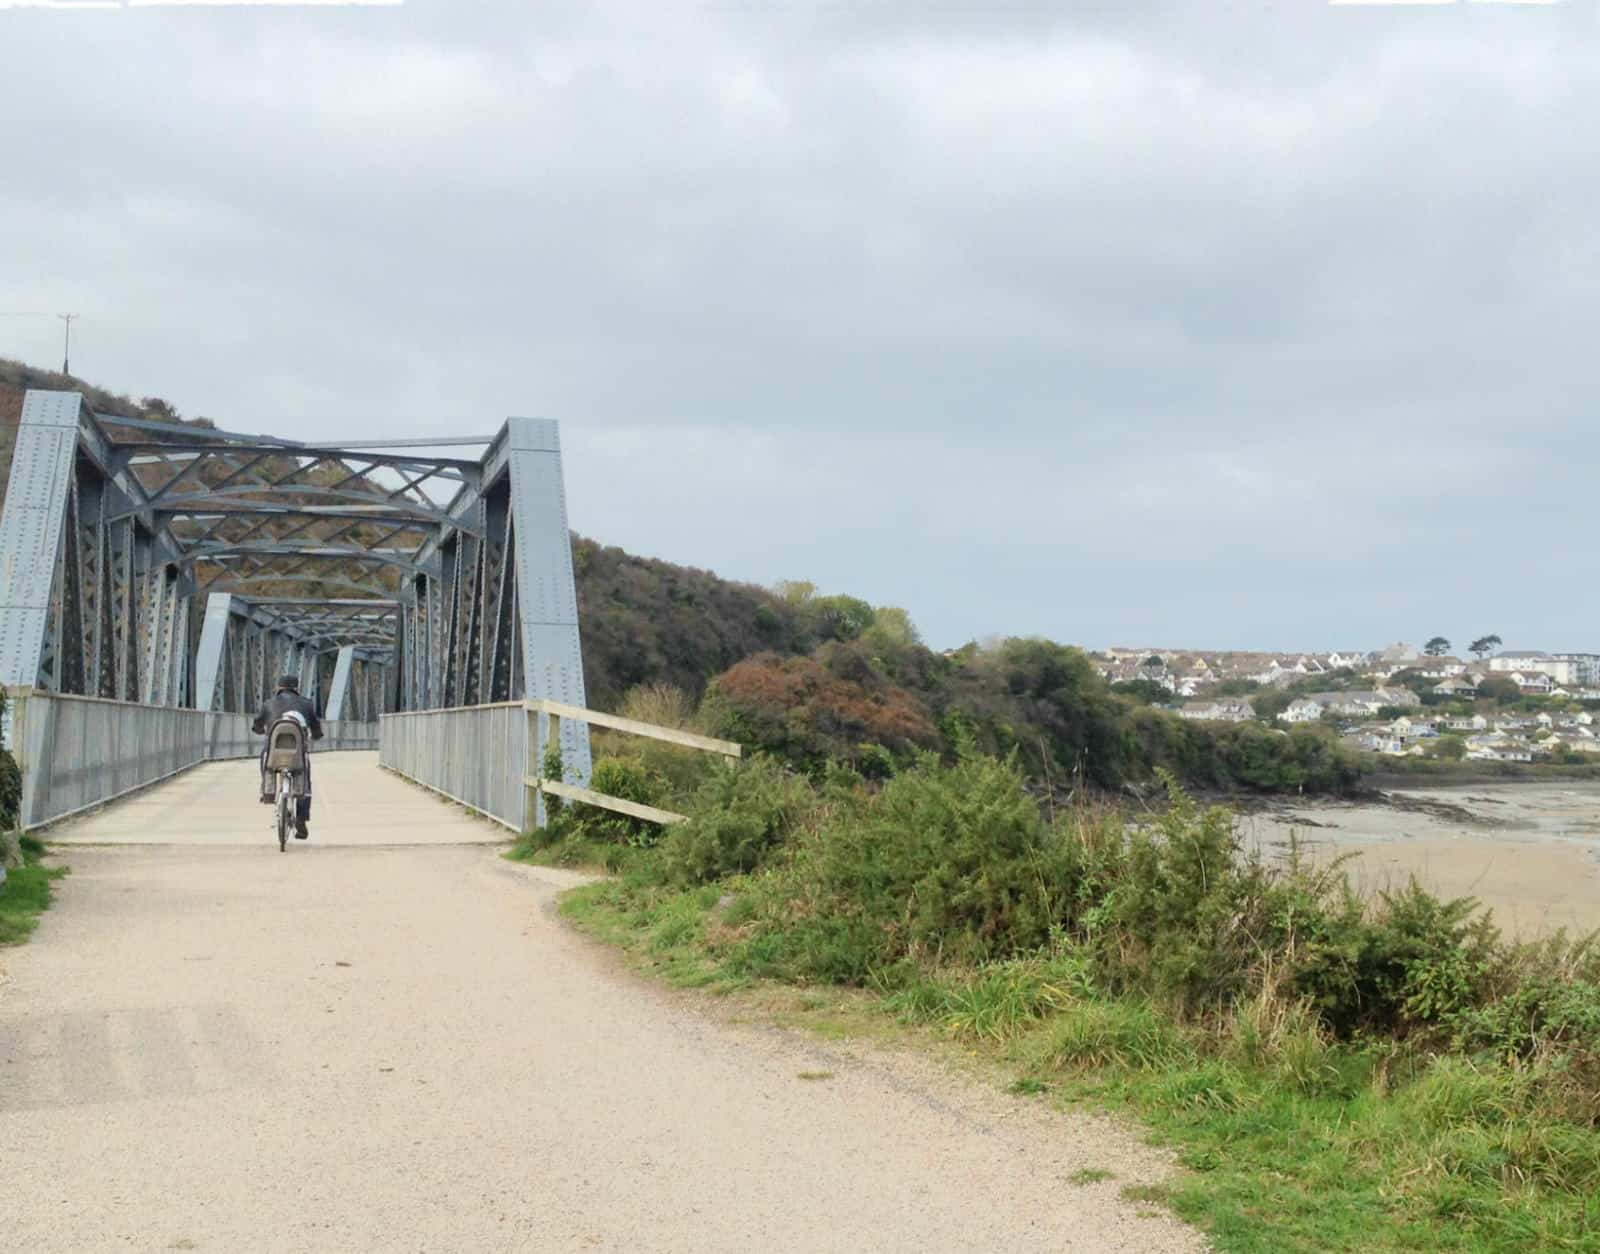 The Camel Trail Wadebridge In Cornwall | My Travel Monkey